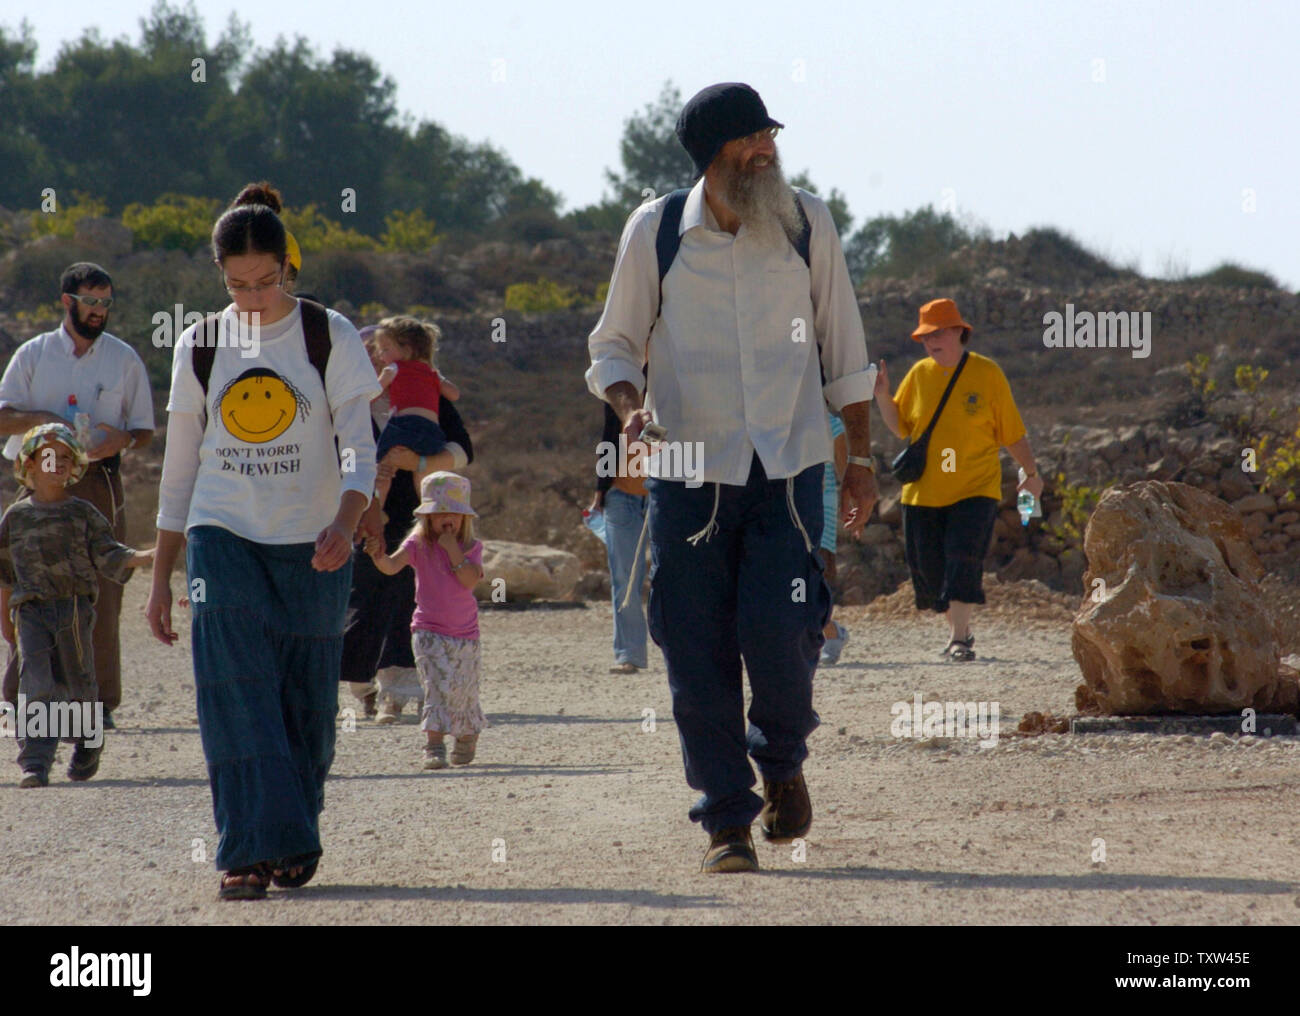 Israeli right-wing settlers walk to Givat Ha'Eitam, near the Jewish settlement Efrat in the West Bank, September 30, 2007, to start a new settler outpost.   (UPI Photo/ Debbie Hill) - Stock Image